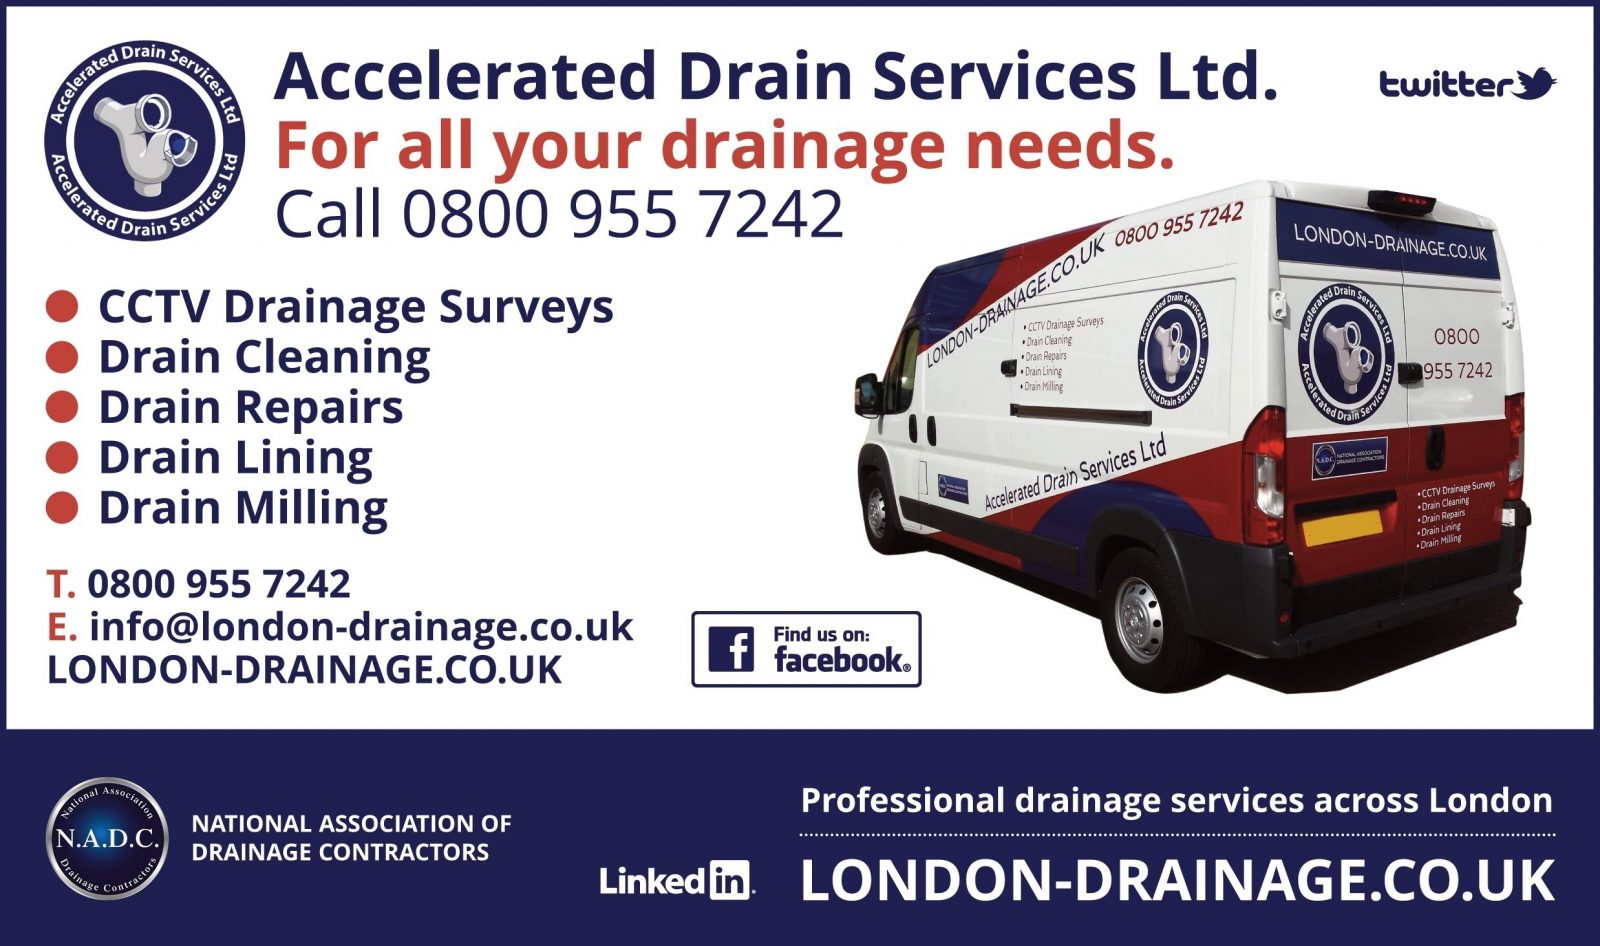 City of  London - Drainage Services - E1, EC1, EC2, EC3, EC4, SE1, WC1, WC2